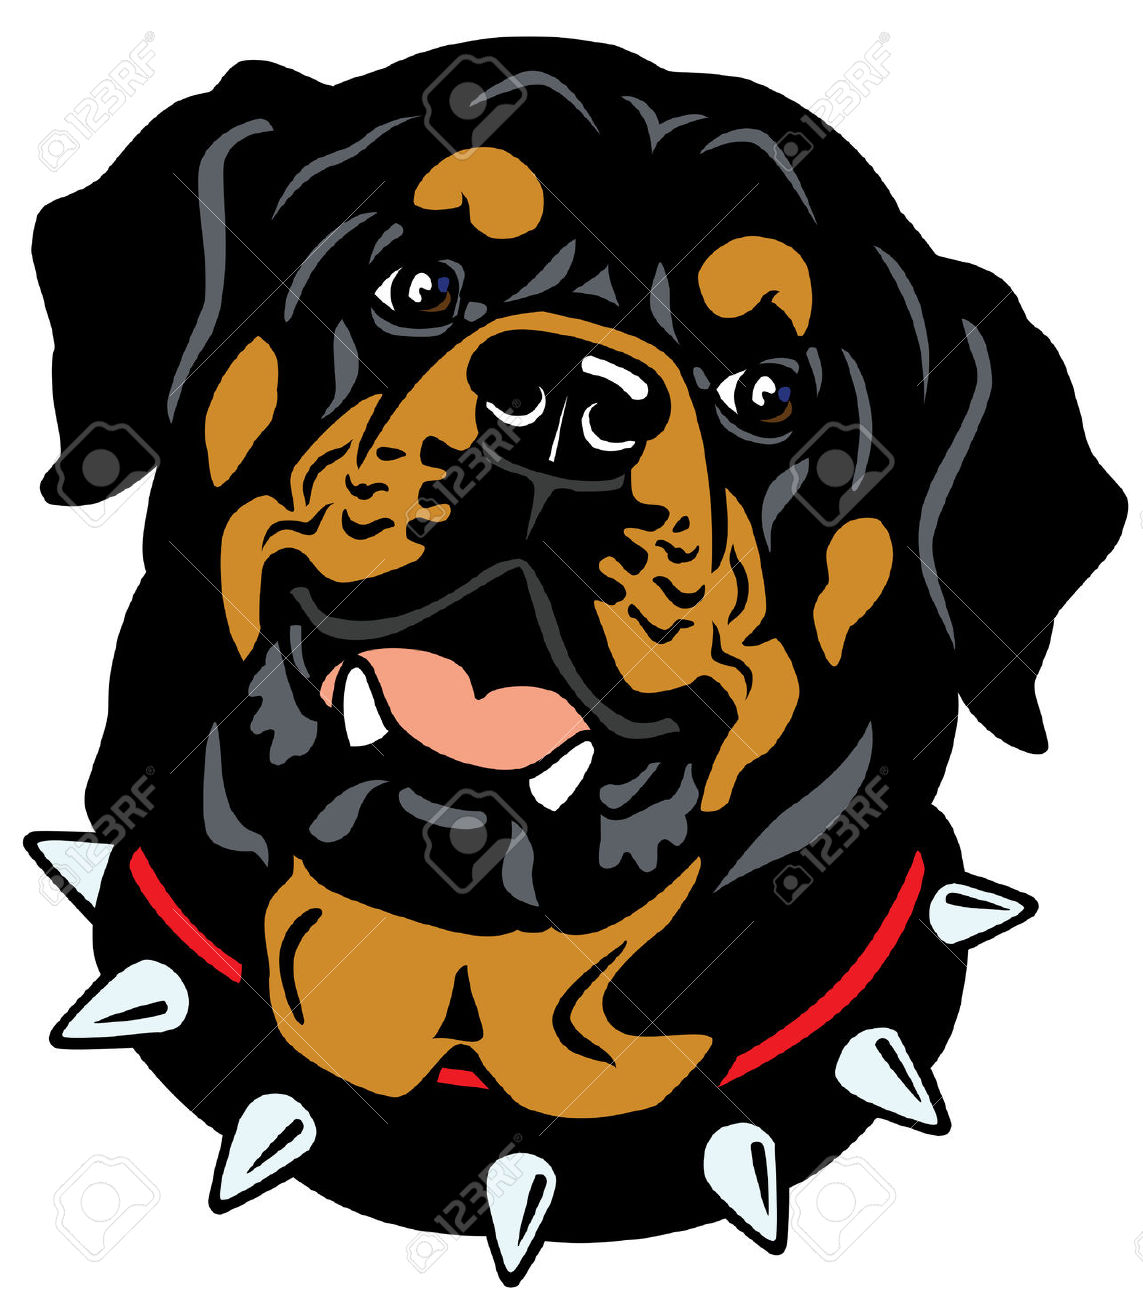 Rottweiler clipart #16, Download drawings